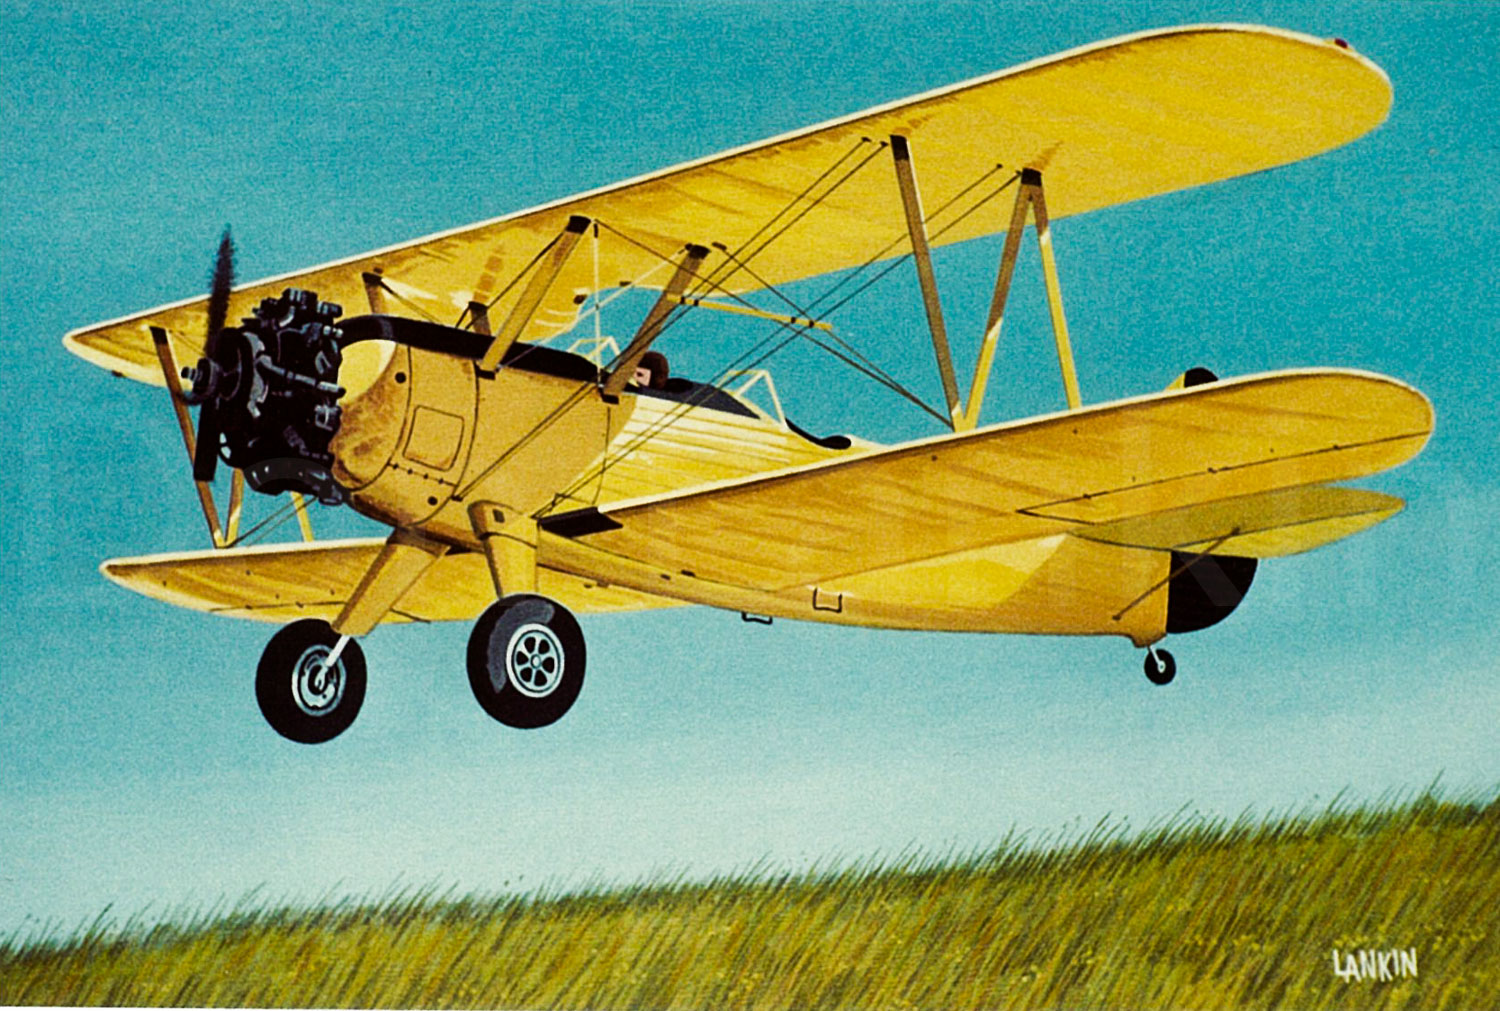 """The Yellow Bird"" Boeing-Stearman PY-13 Kaydet, the most widely used primary trainer of the US forces in WW II."